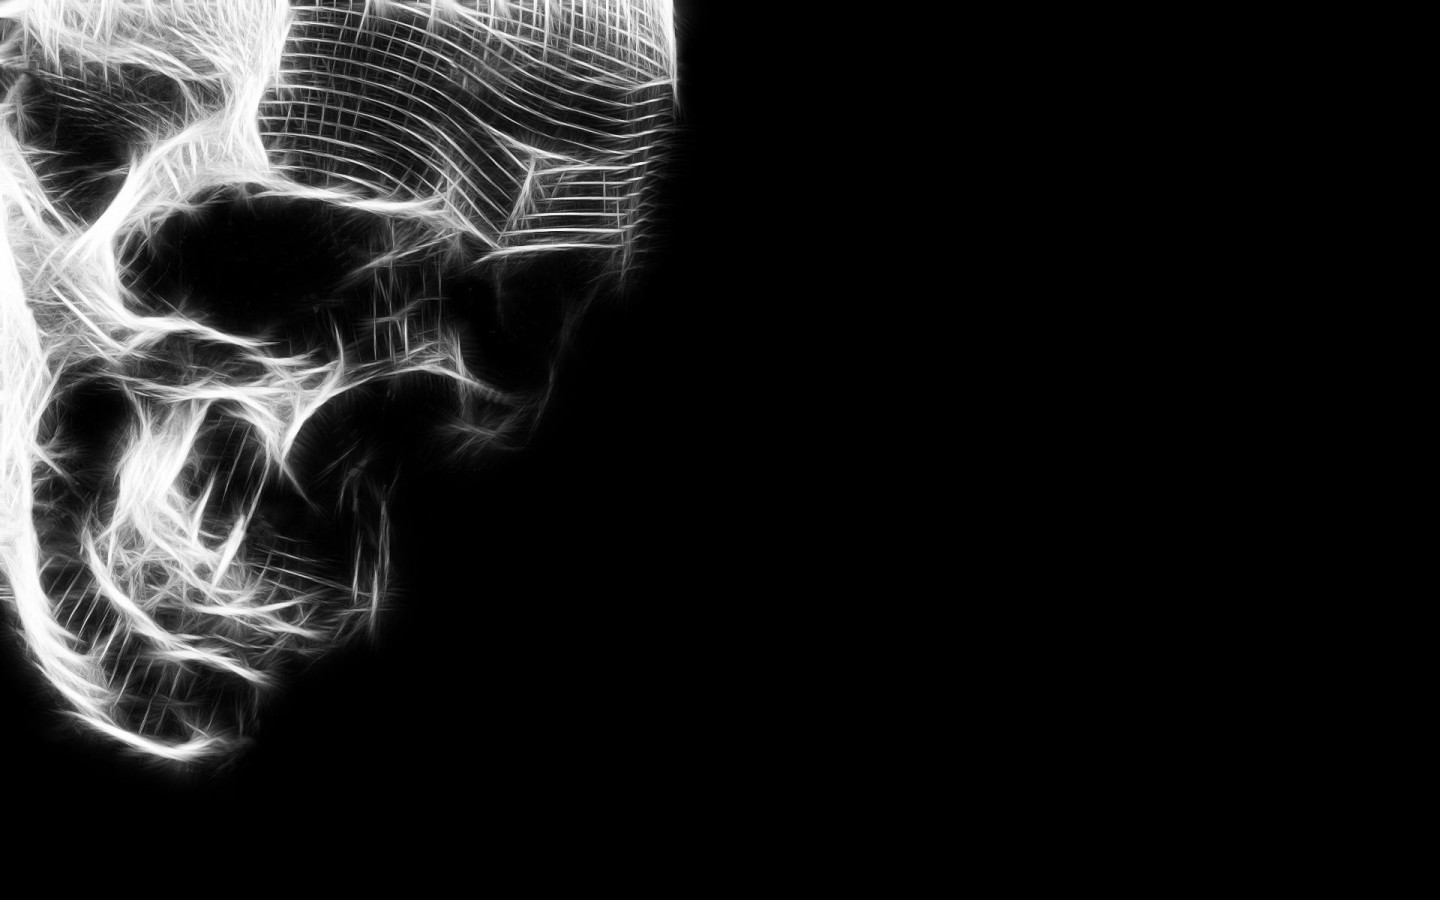 skull background , background, texture, photo, skull on black texture background